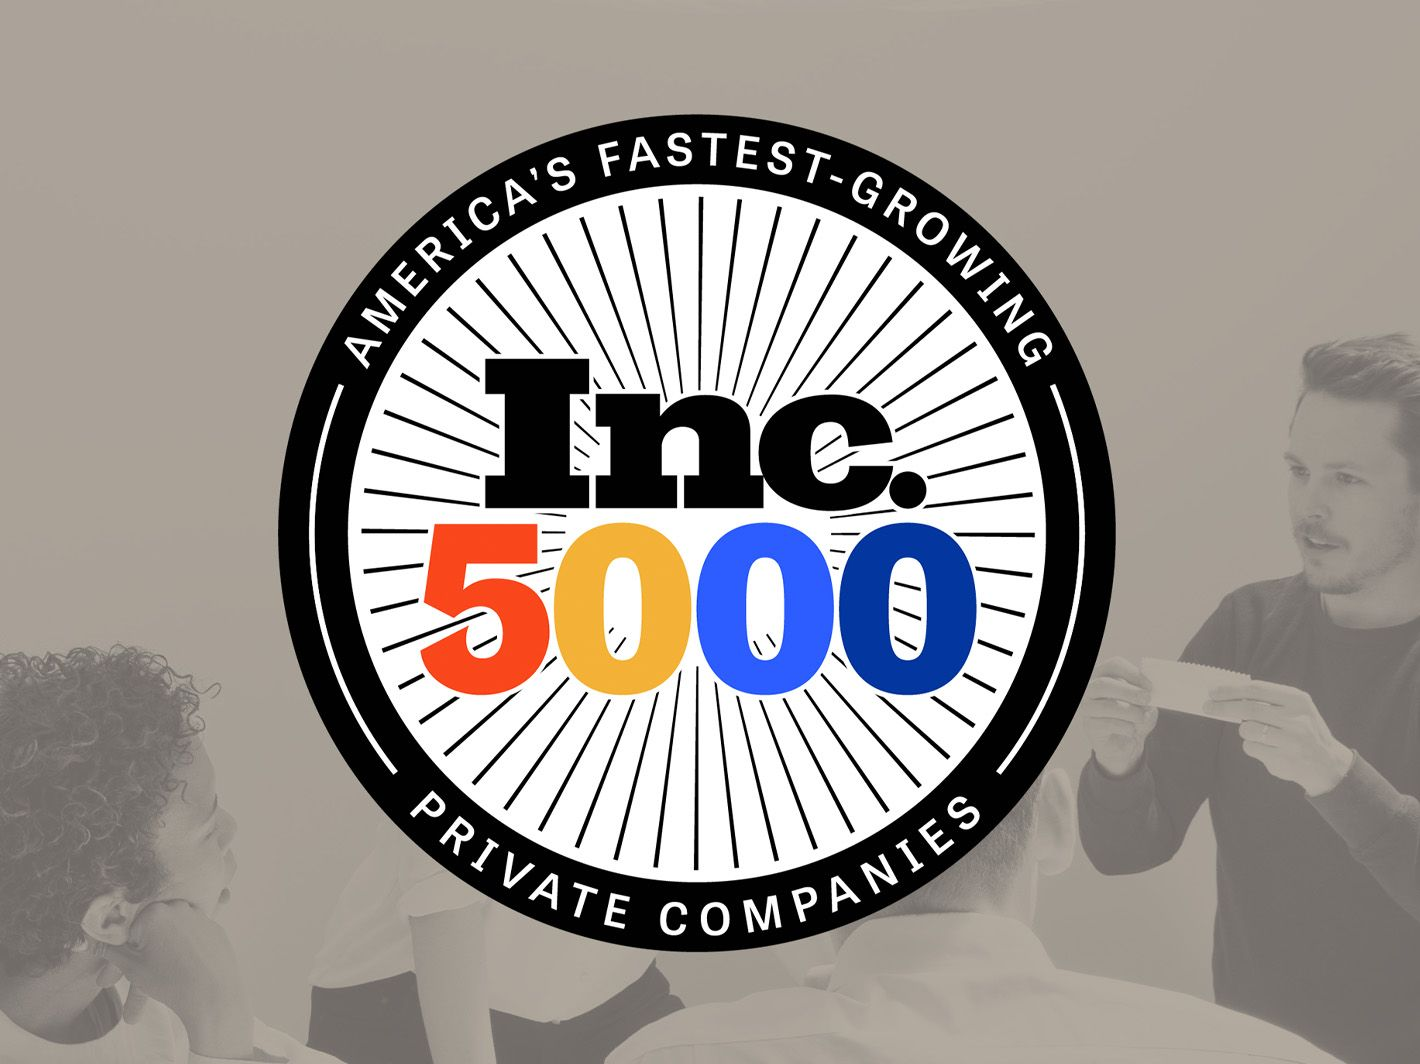 We're Inc. 5000!